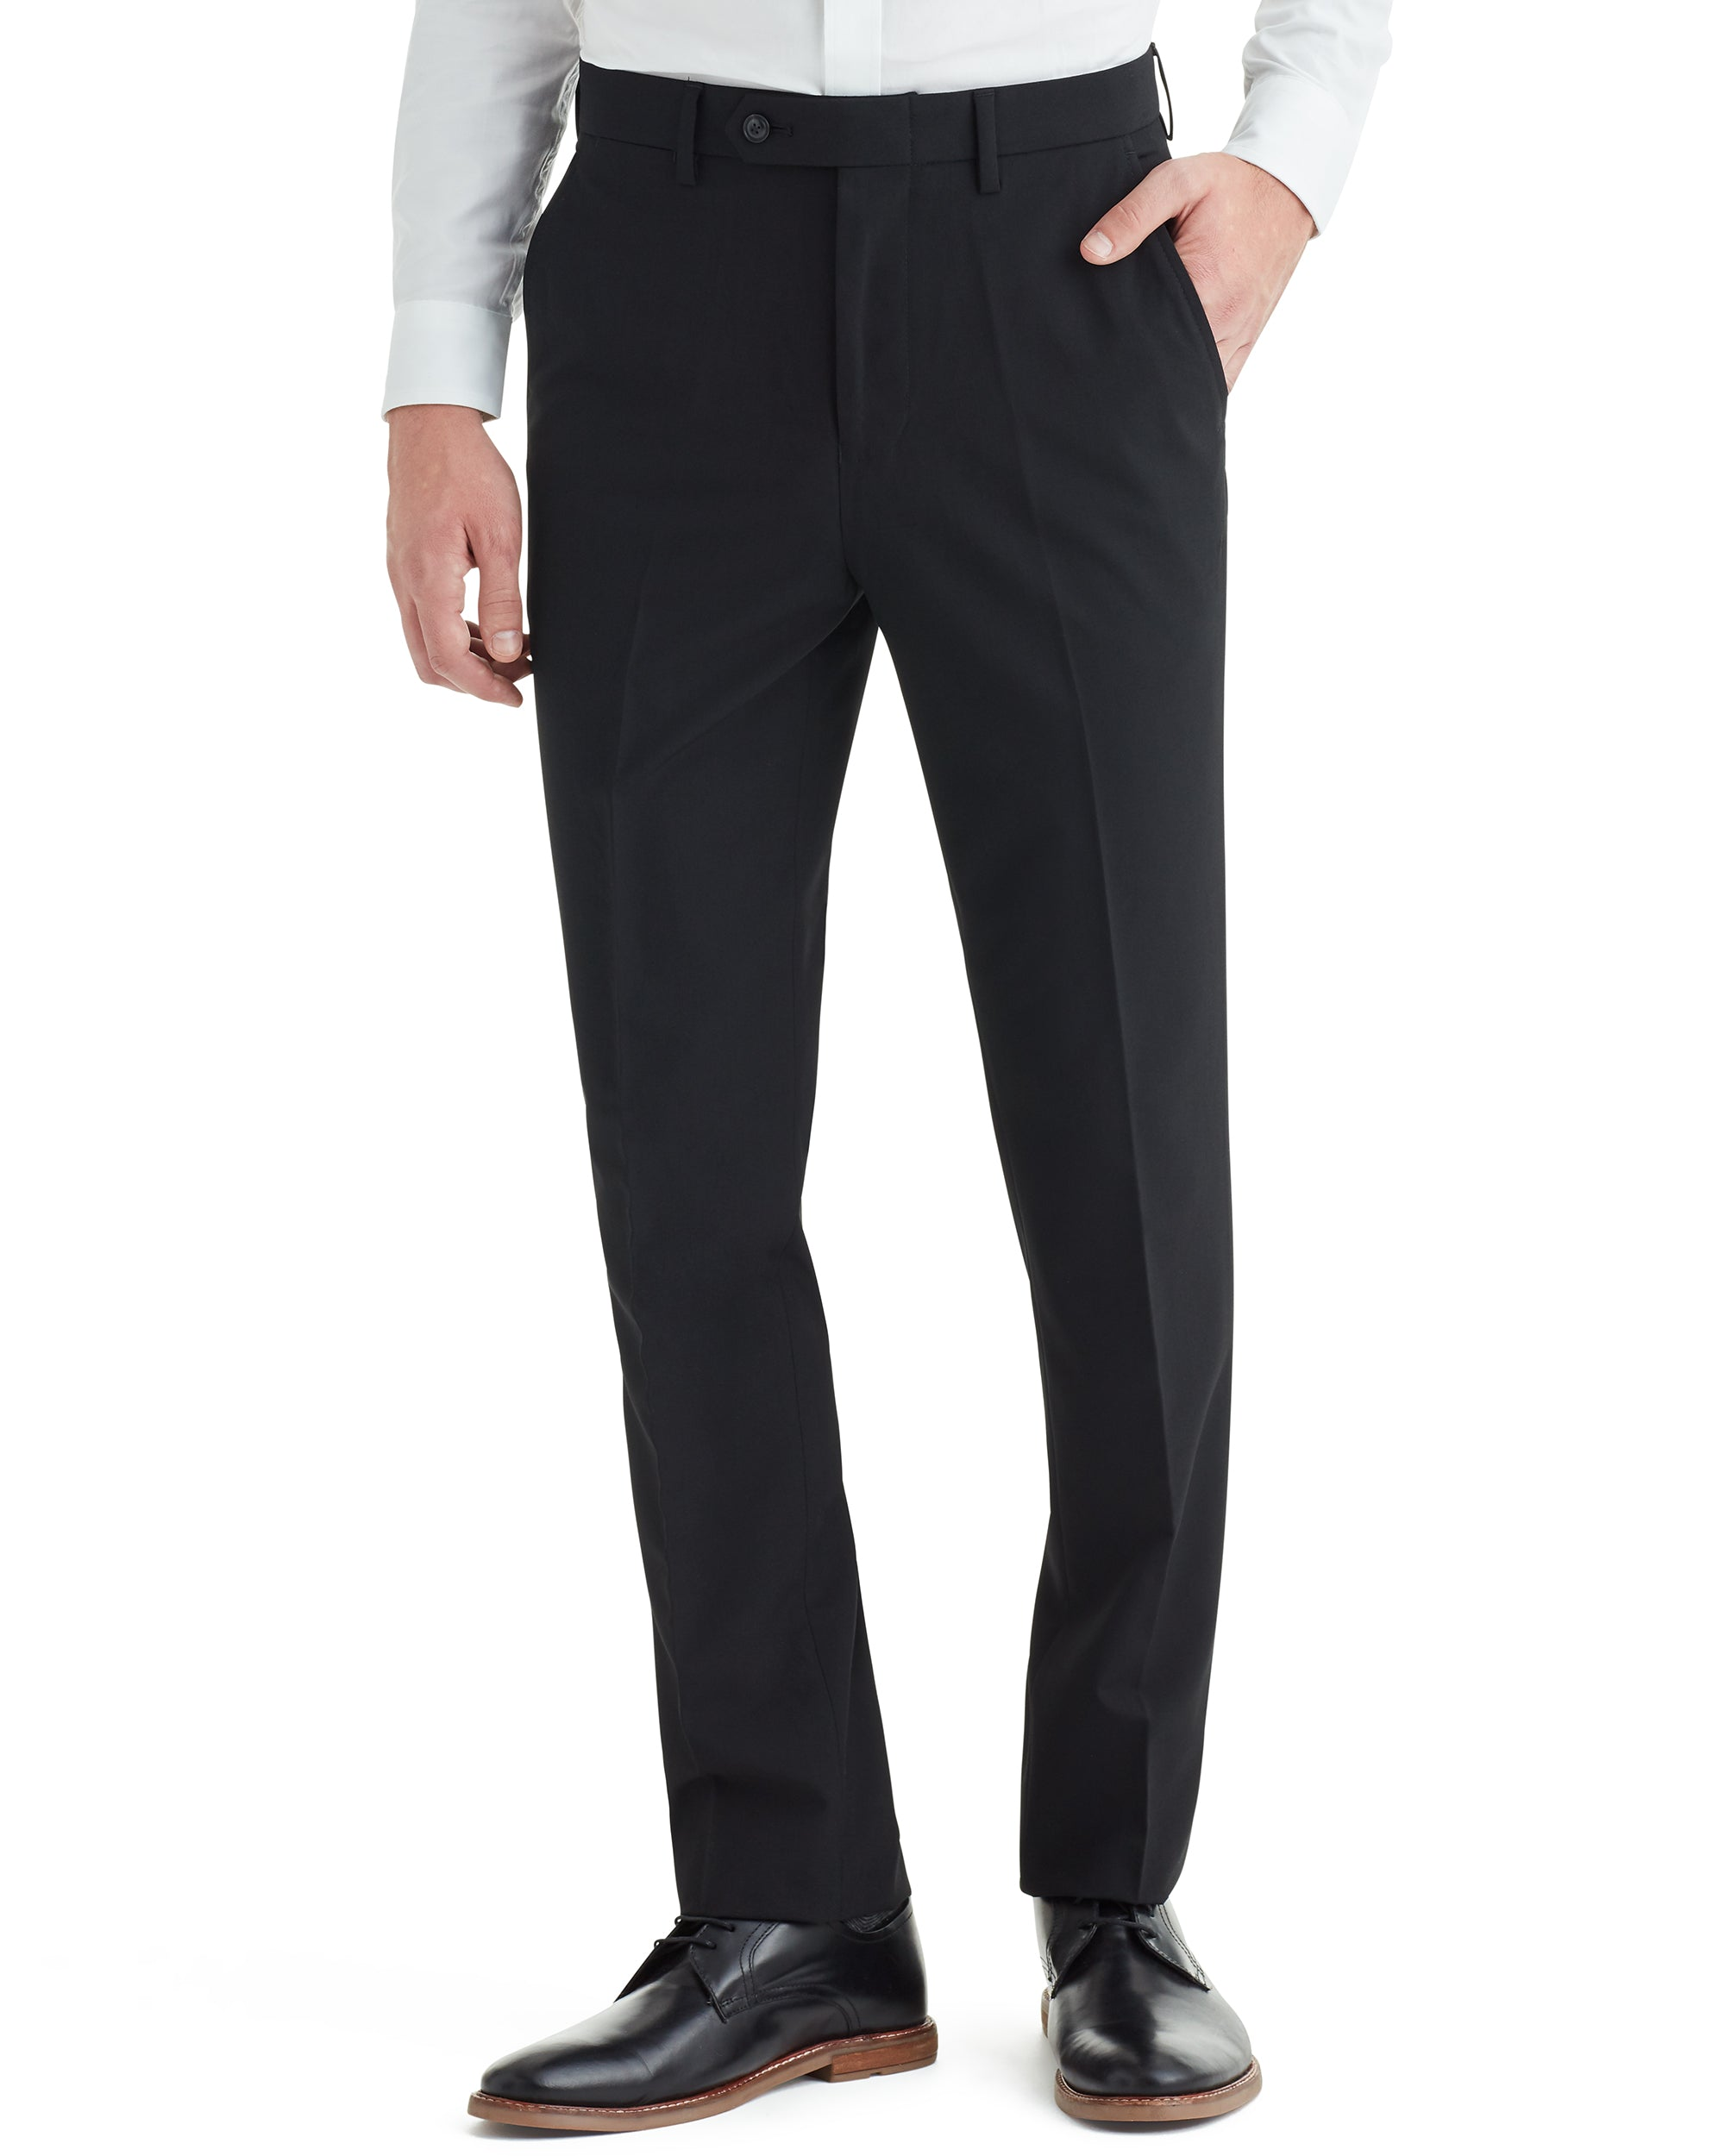 Cave Bi-Stretch Flat Front Suit Pant - Black